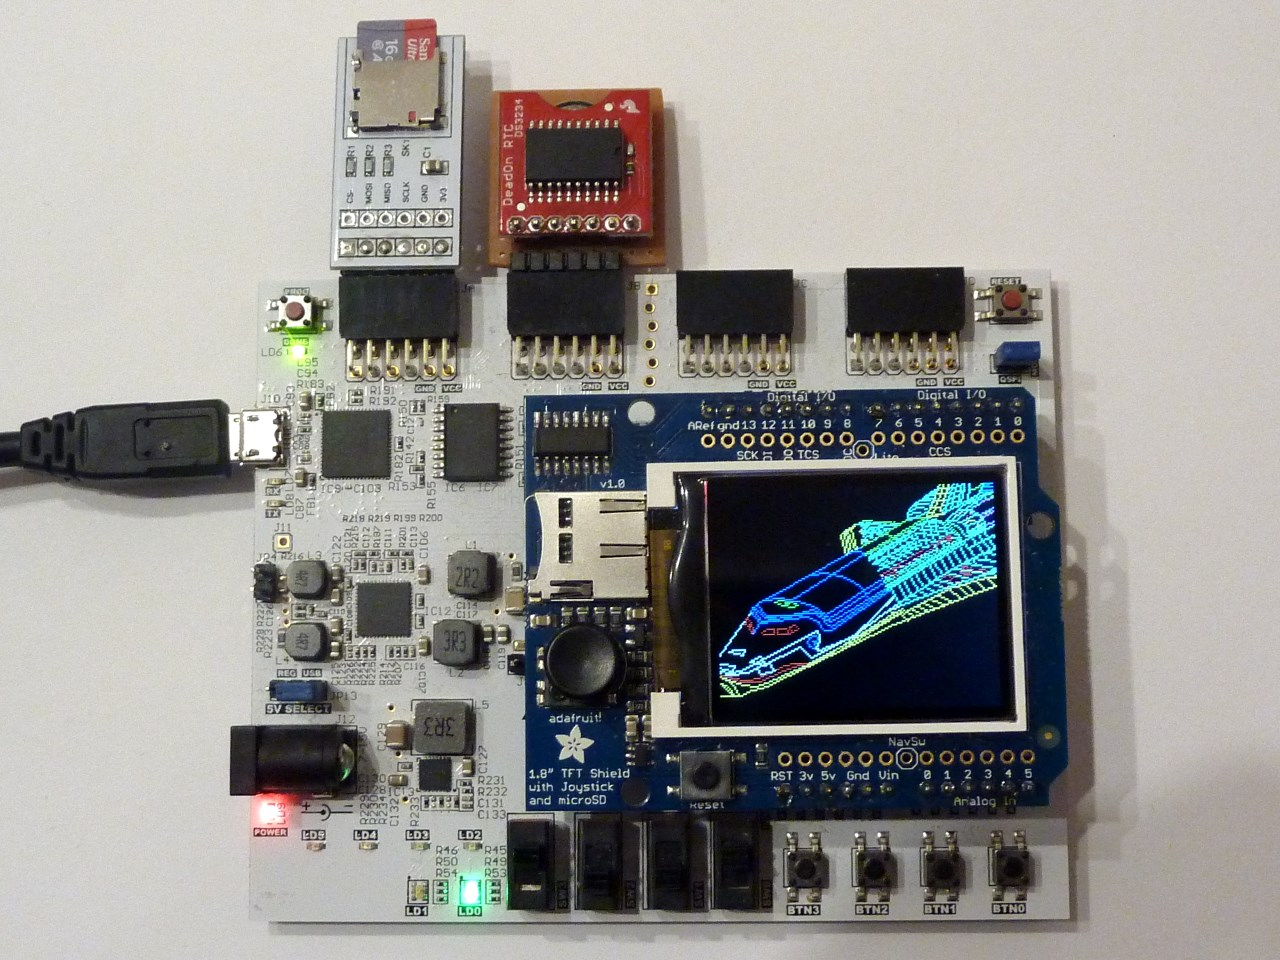 Astrobe - An Oberon development system for FPGA RISC5 Systems